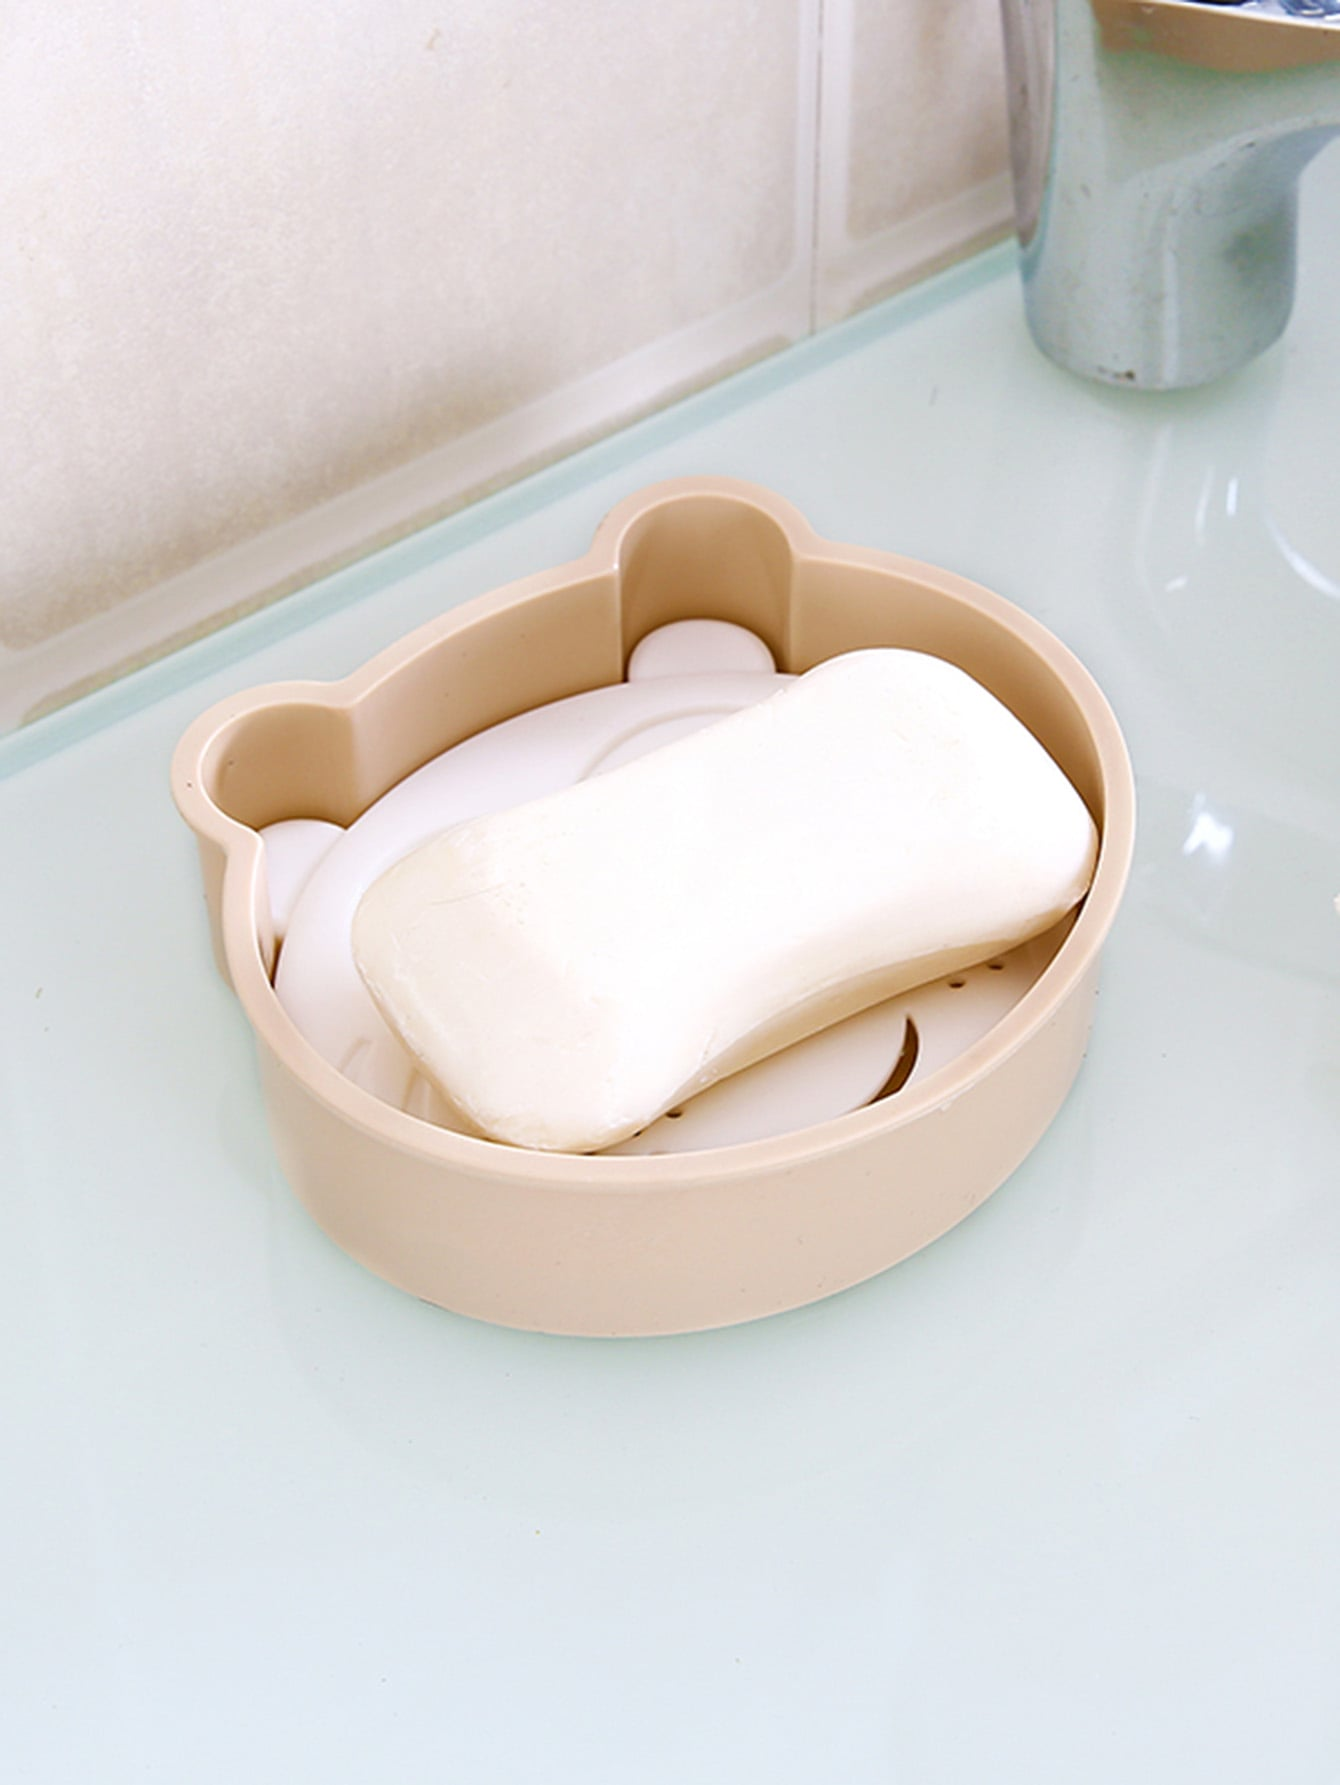 Double Layered Draining Soap Dish